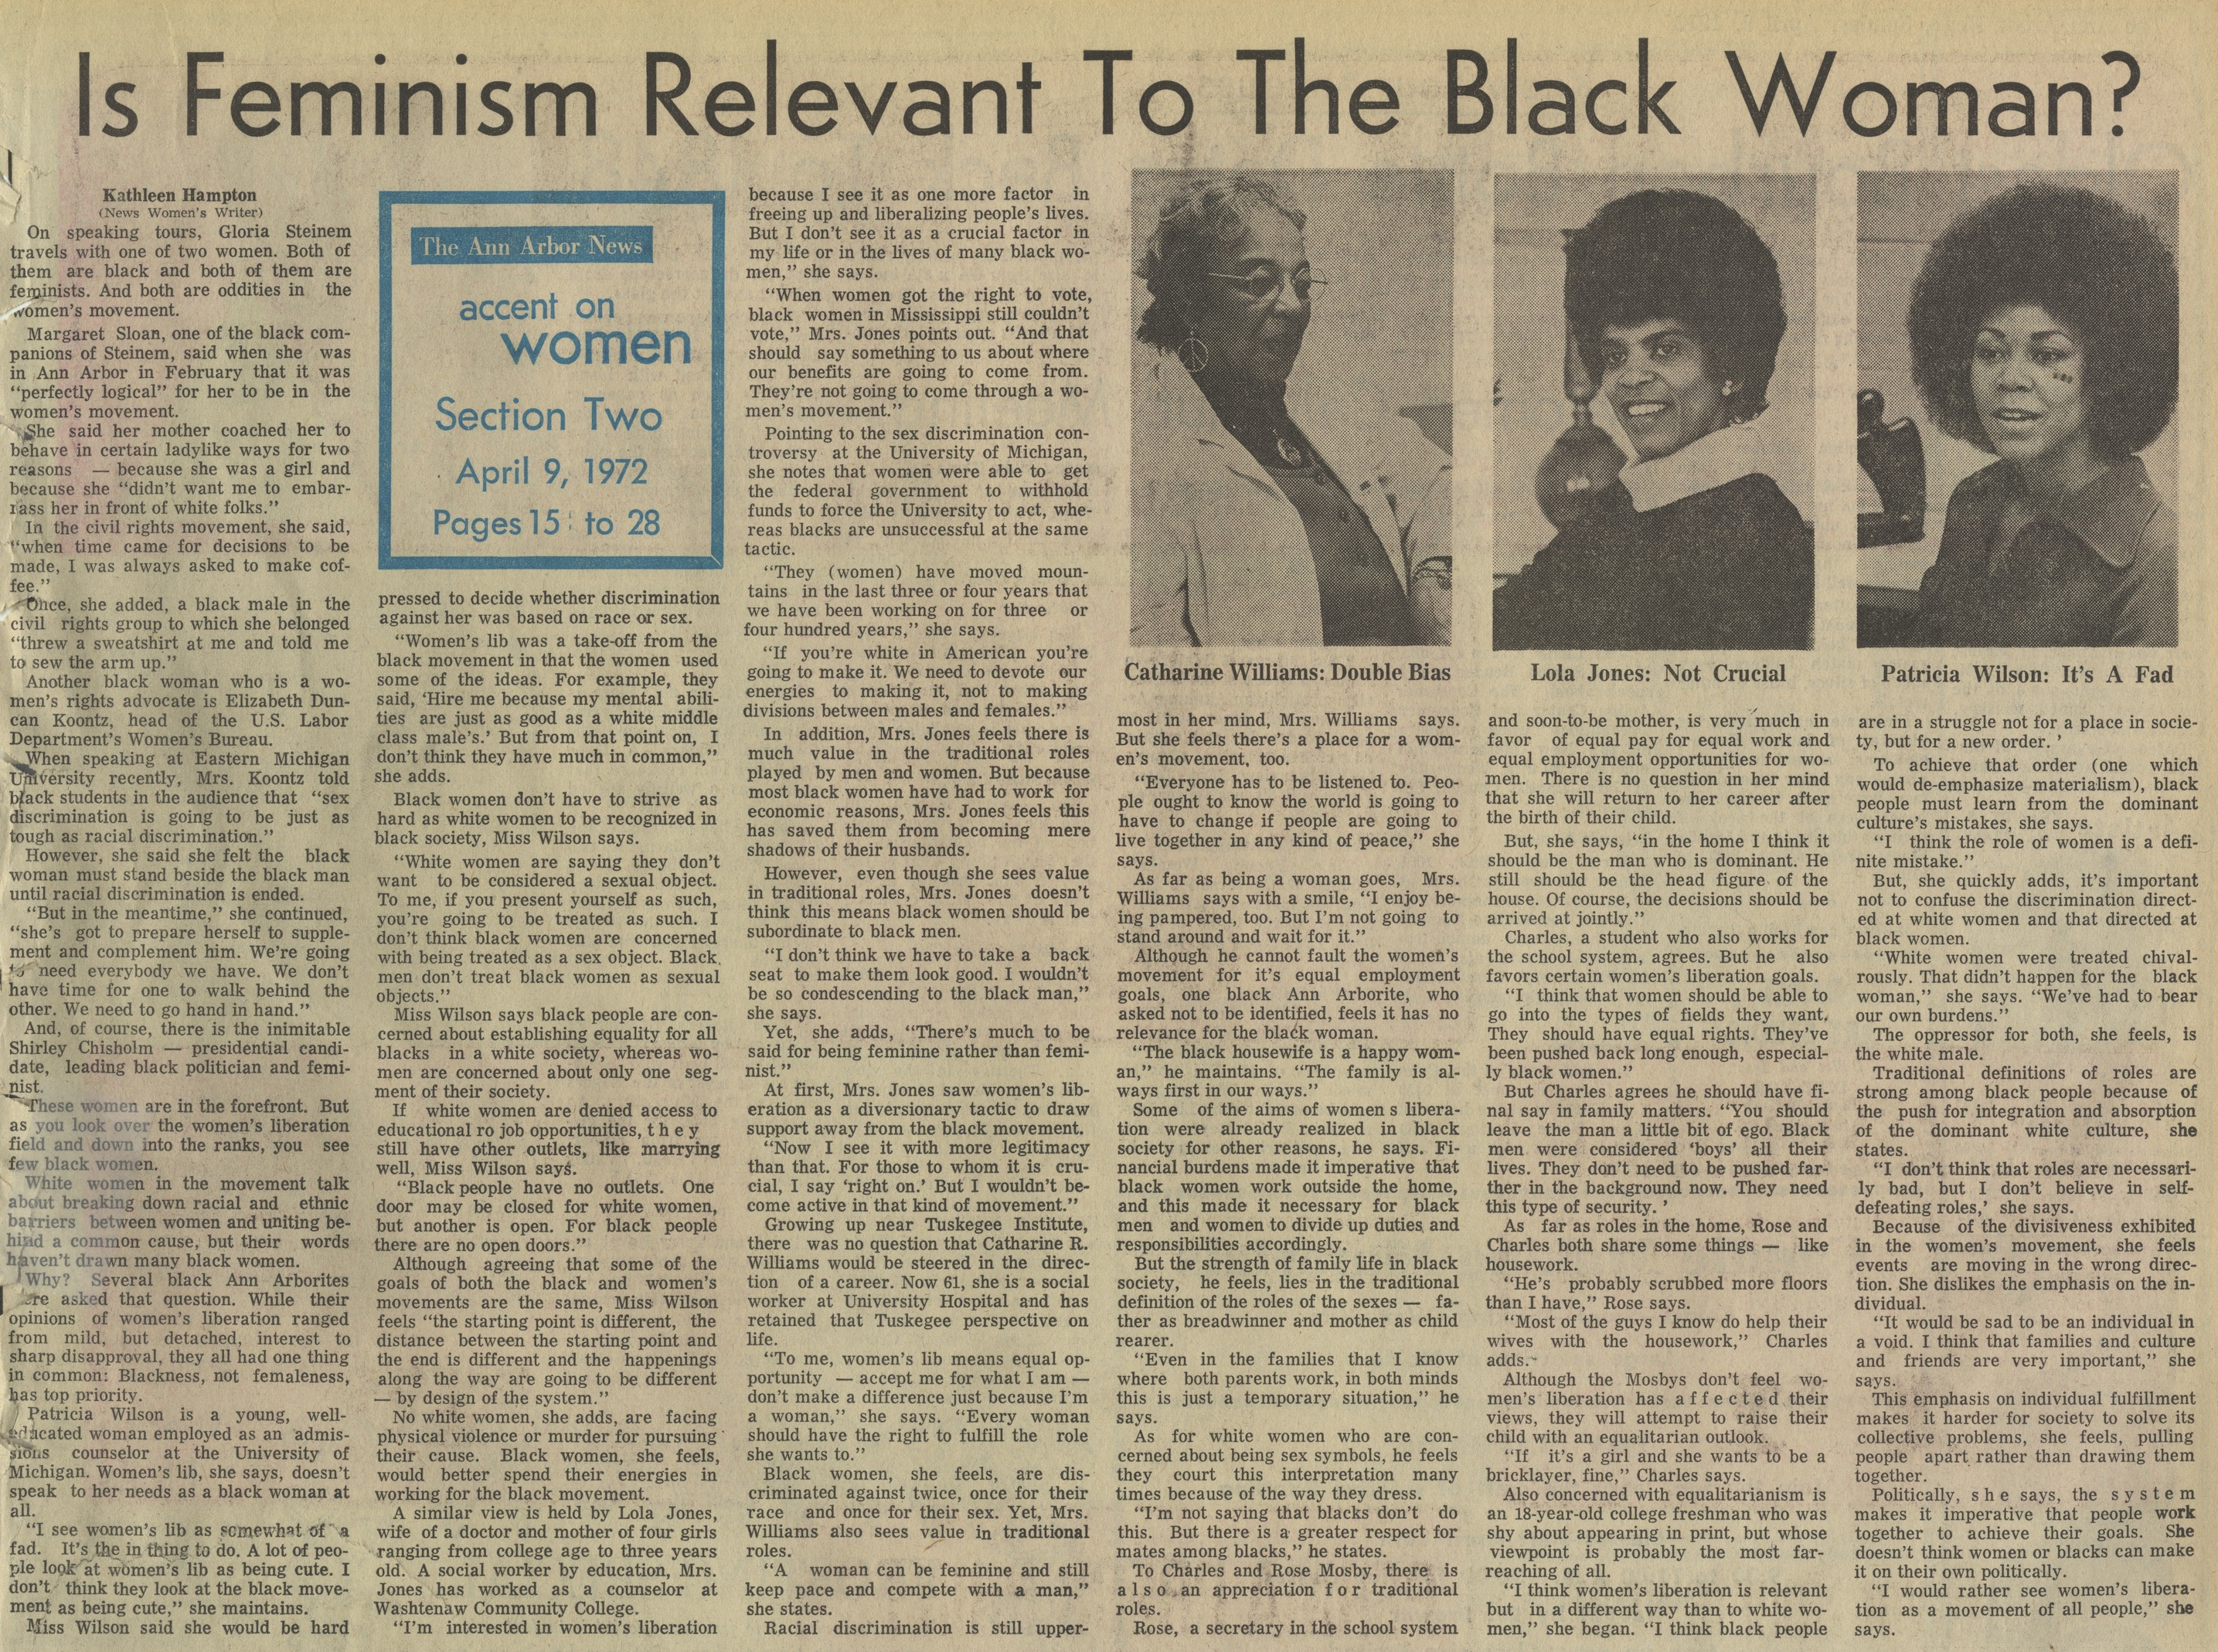 Is Feminism Relevant To The Black Woman? image